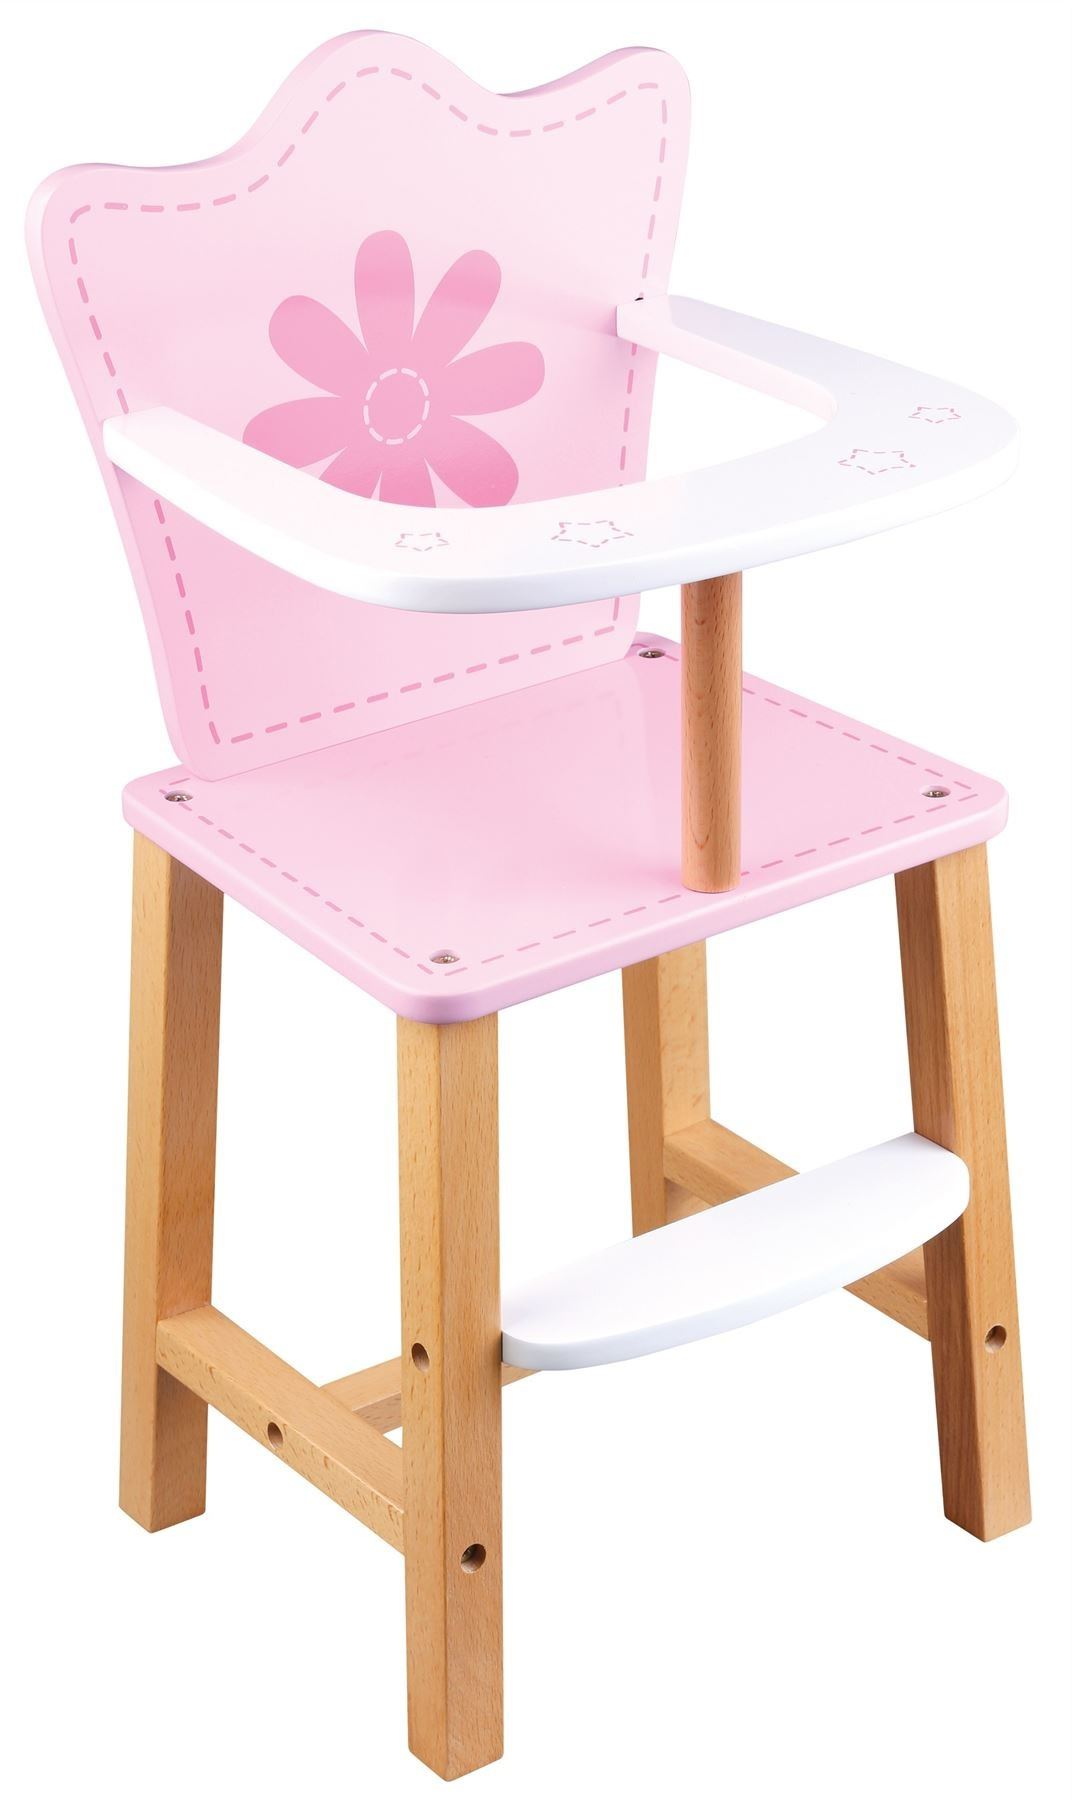 baby toy high chair set cheap cool chairs lelin childrens pretend play doll house feeding